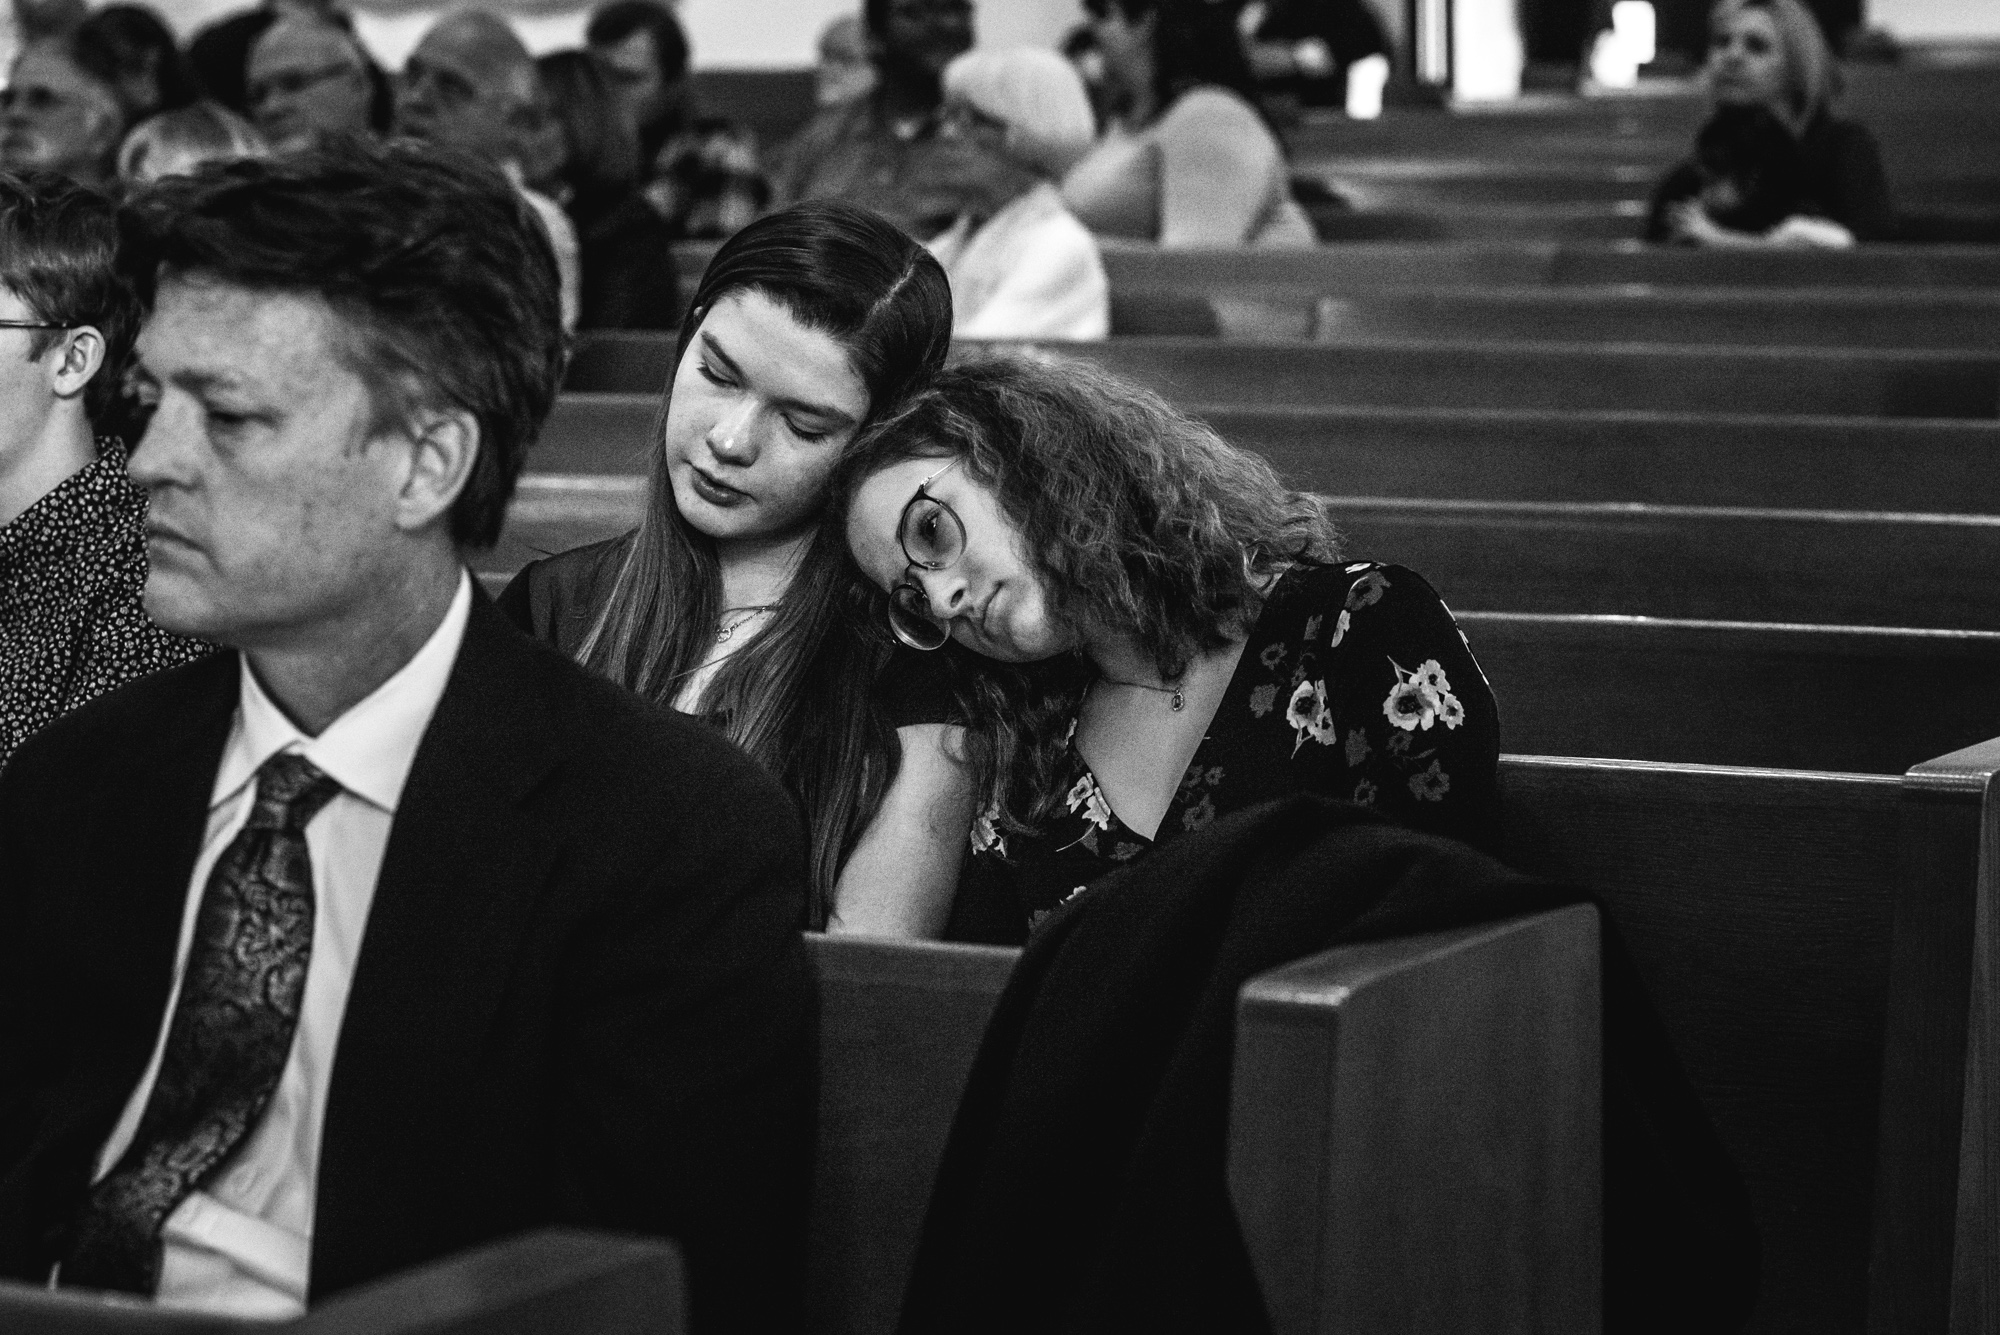 A girl rests her head on her sister's shoulder as they cry in grief during their grandmother's funeral at Greeley United Methodist Church in Greeley, Colorado